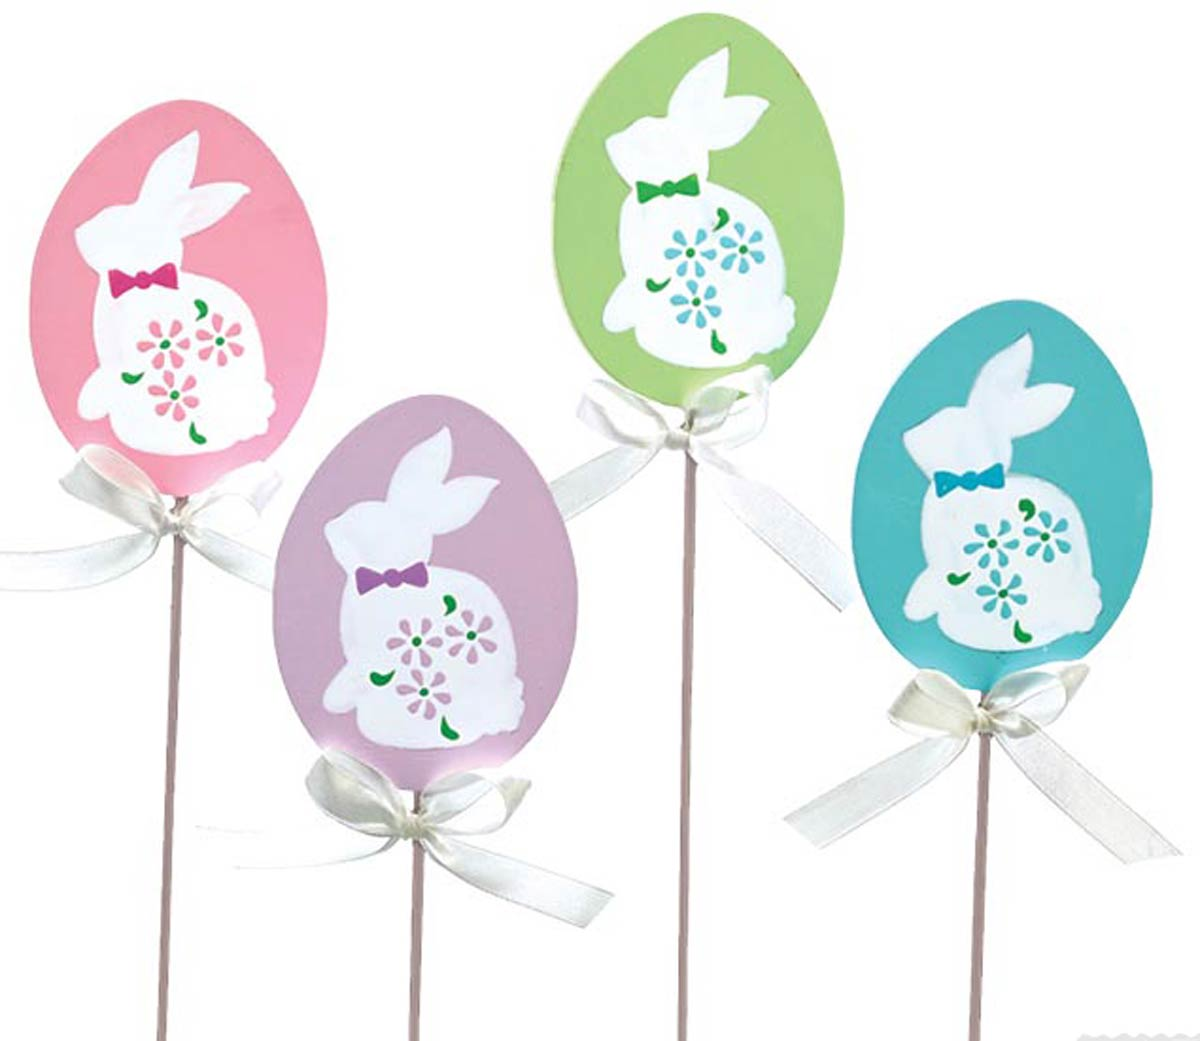 Egg Shape Wooden Picks with Bunny Silhouette Set of 4